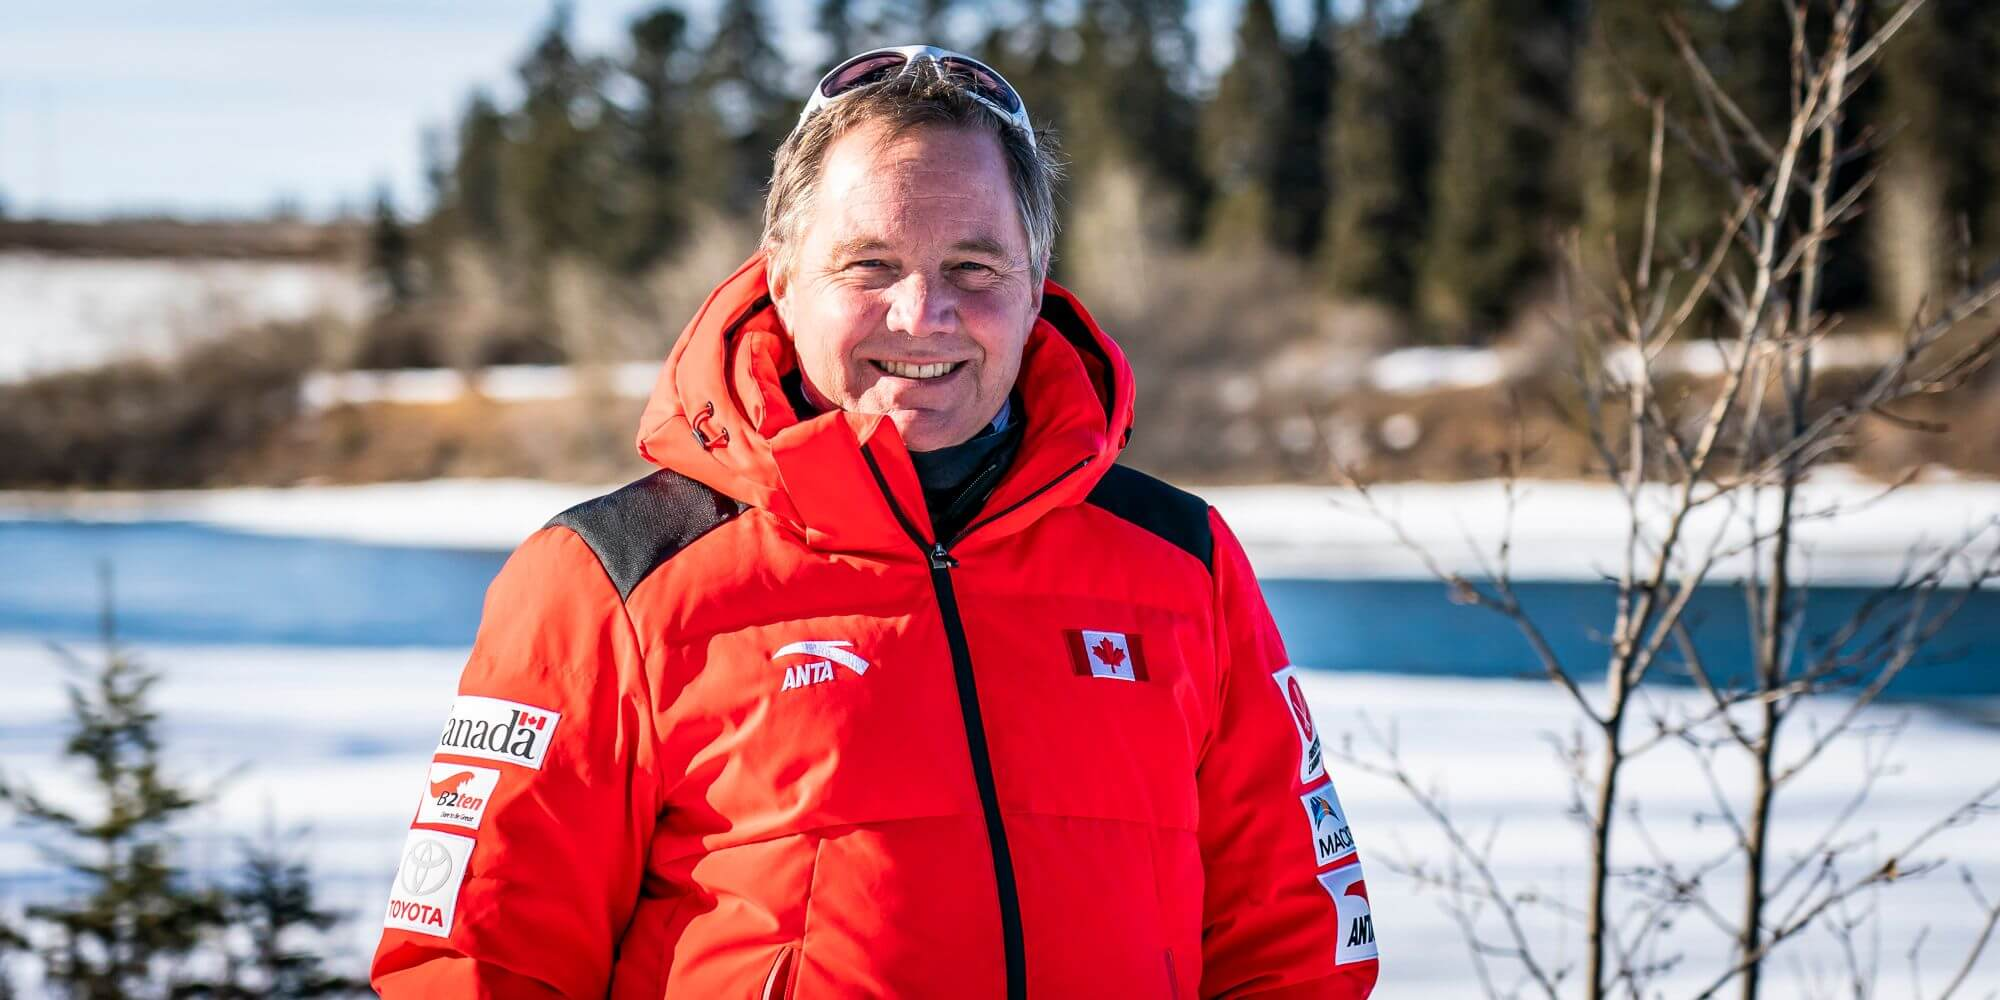 Todd Allison wearing a bright red winter jacket standing infront of a frozen river with pine trees behind it